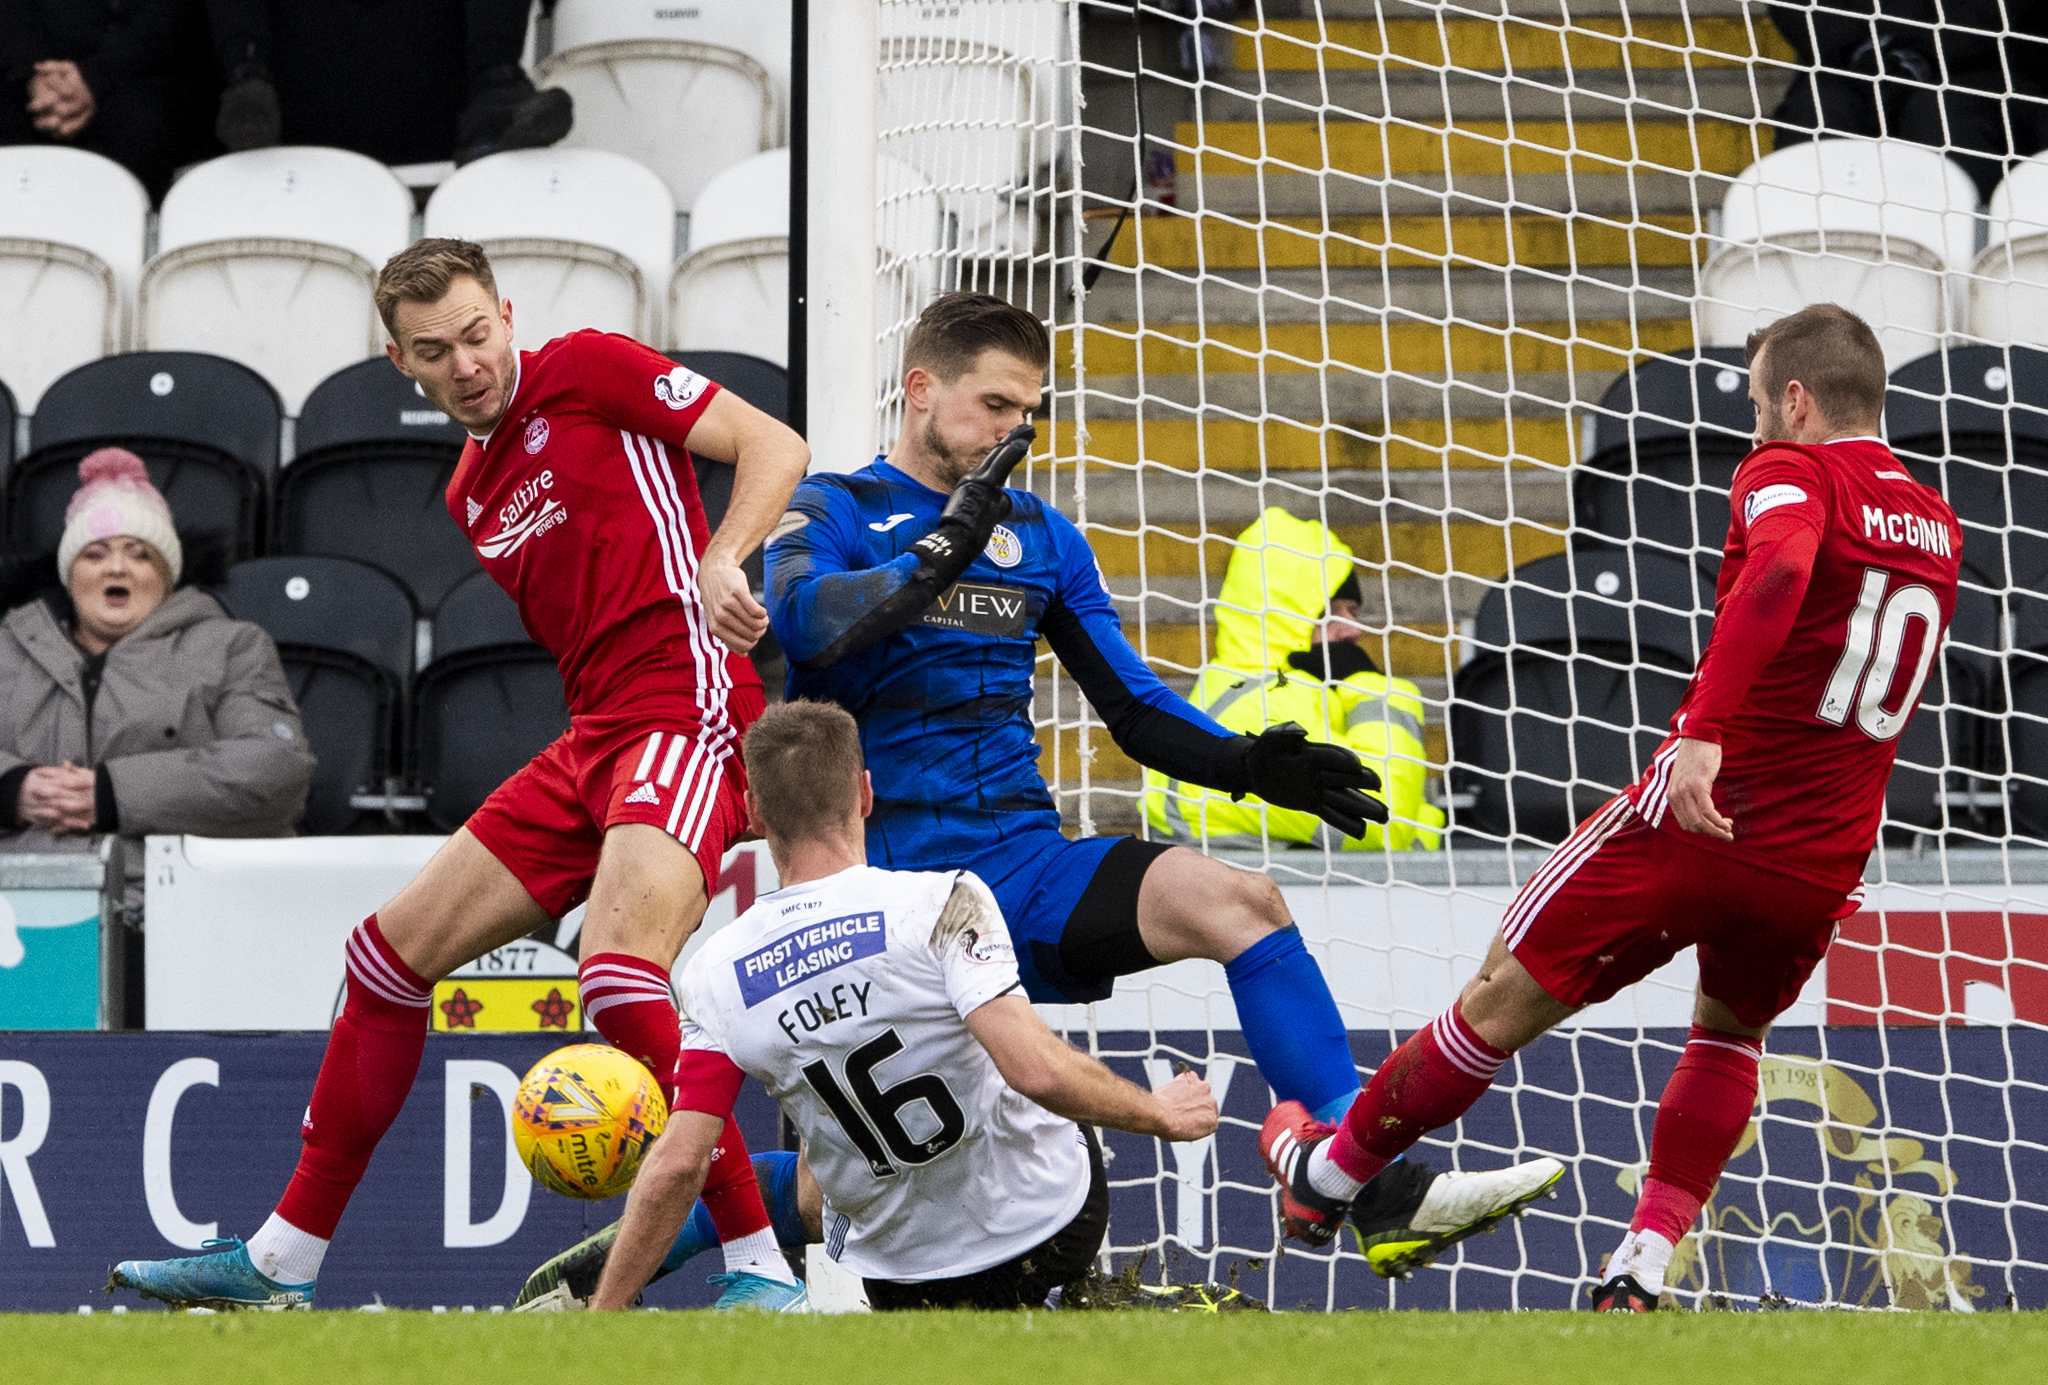 Sam Foley defends an Aberdeen chance created by Ryan Hedges and Niall McGinn, right, during the Ladbrokes Premiership match between St Mirren and Aberdeen.